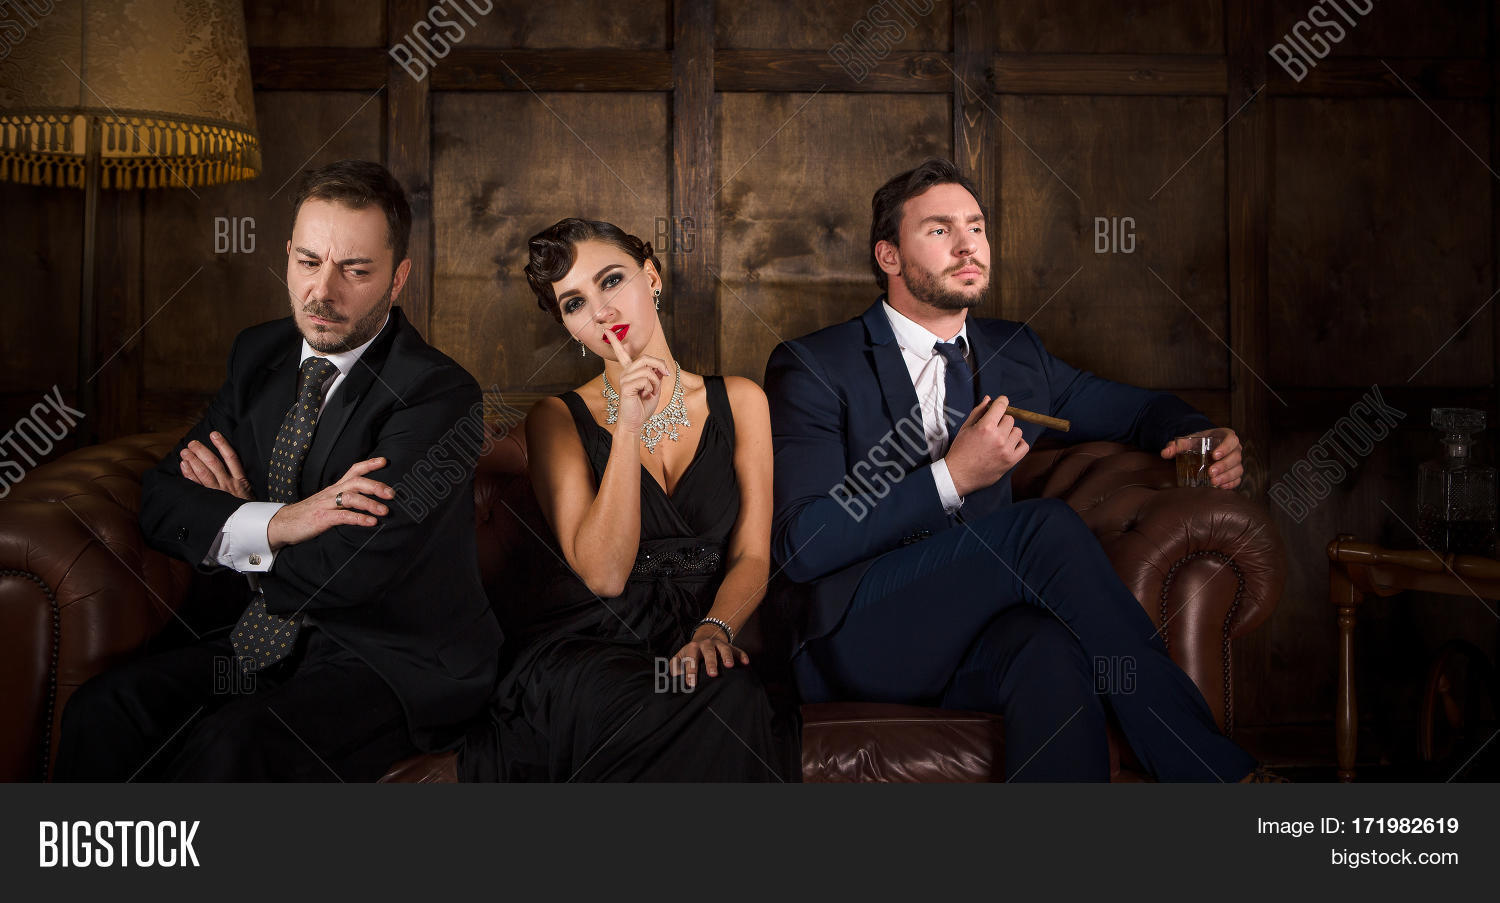 572ba8f228 Rivalry or competition between two handsome rich executive men for elegant lady  with red lips.